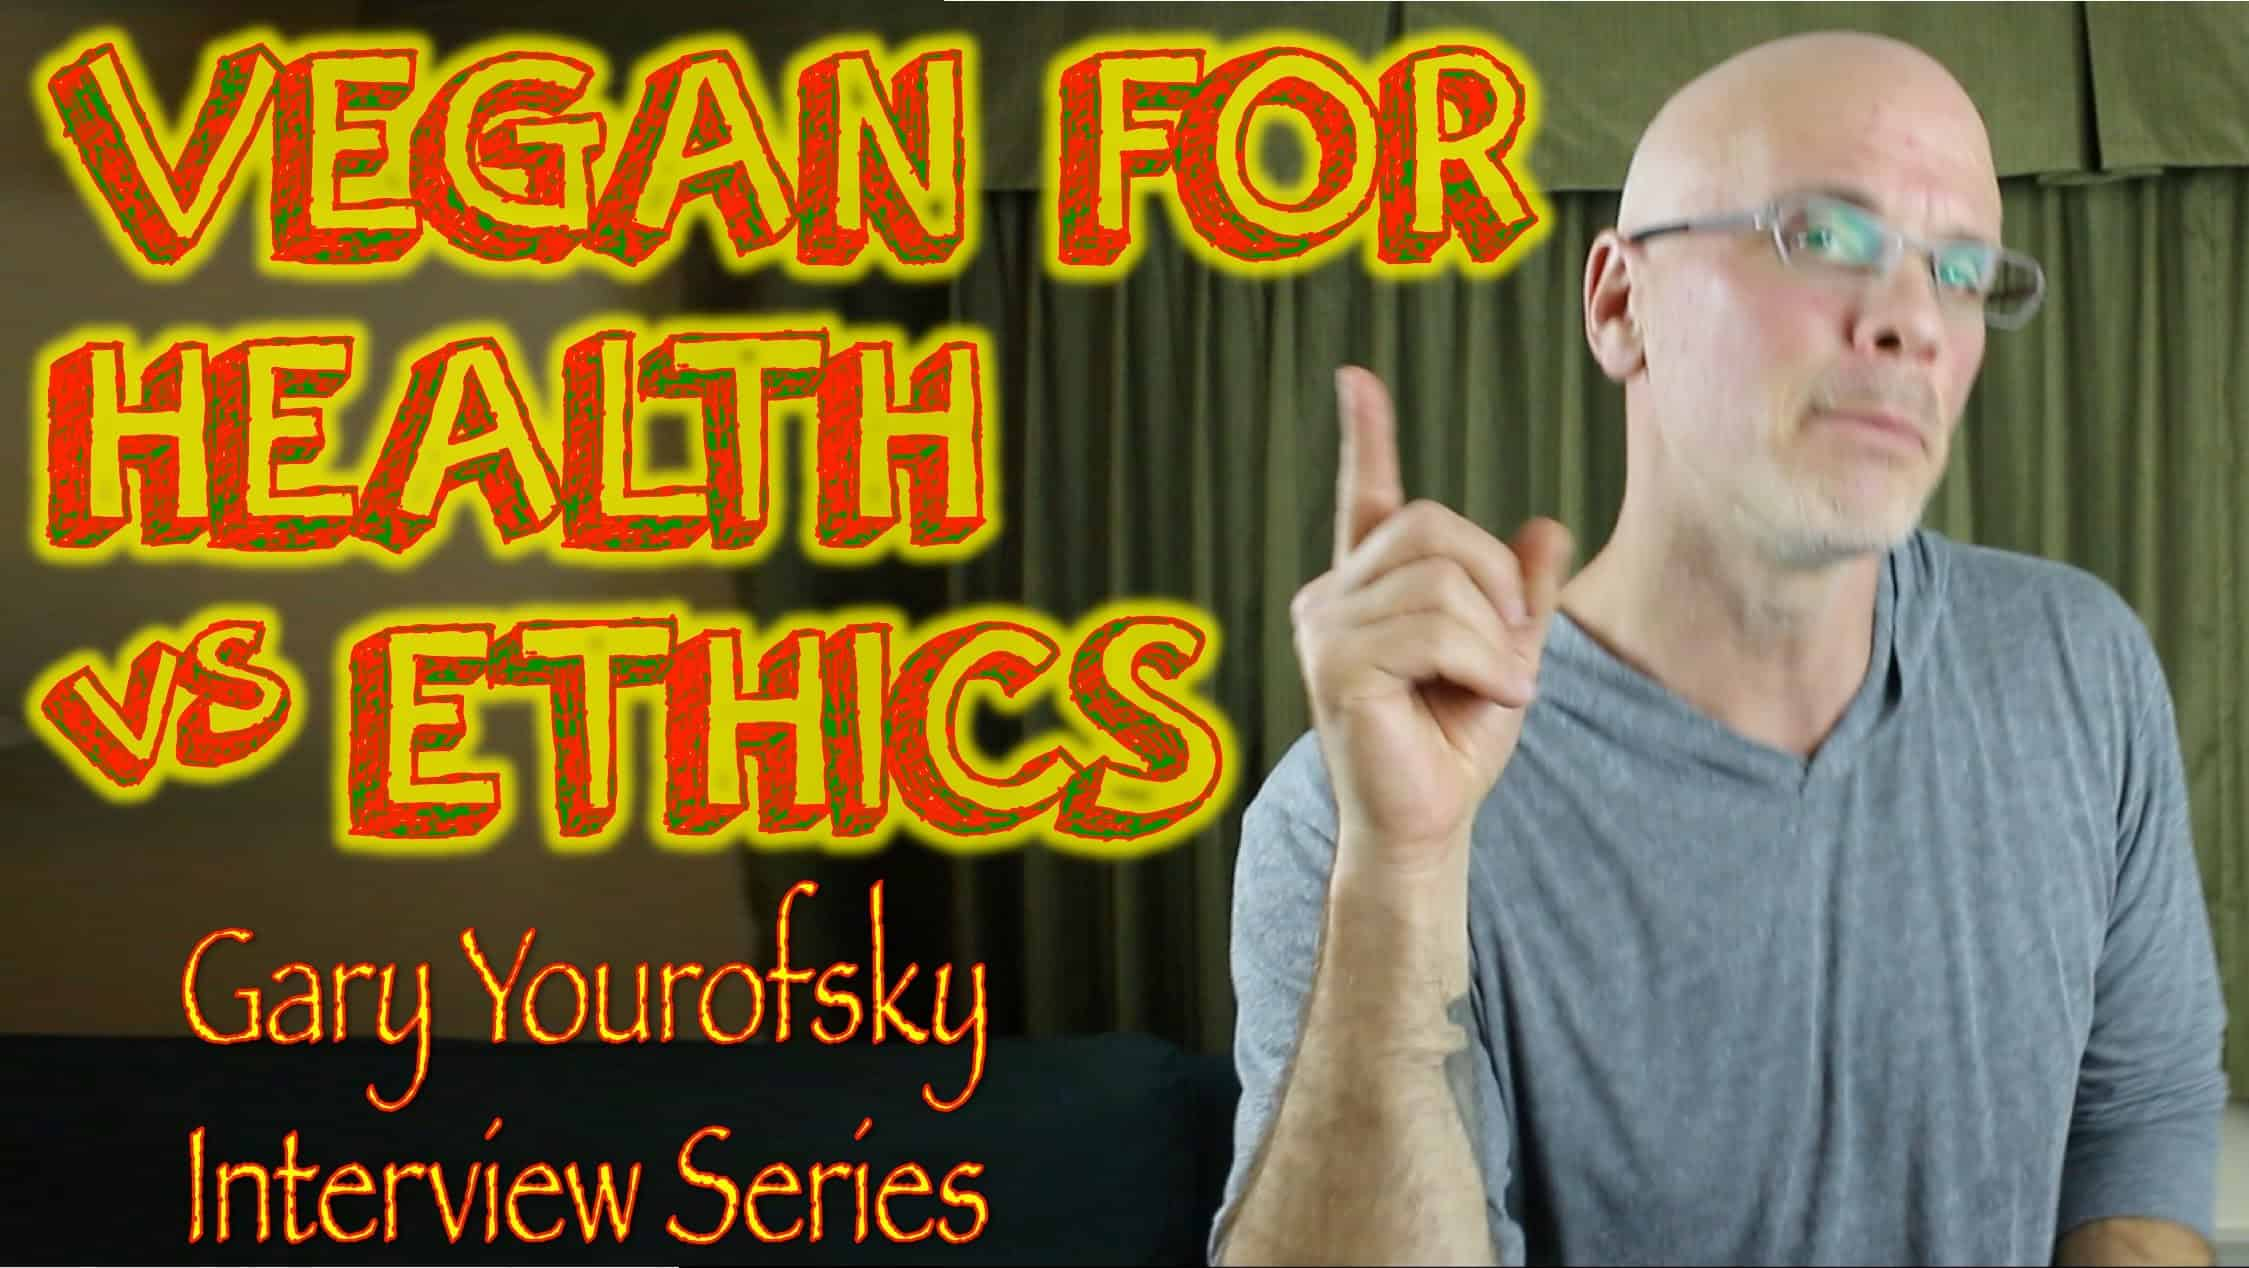 Is Going Vegan for Health Enough? | Gary Yourofsky